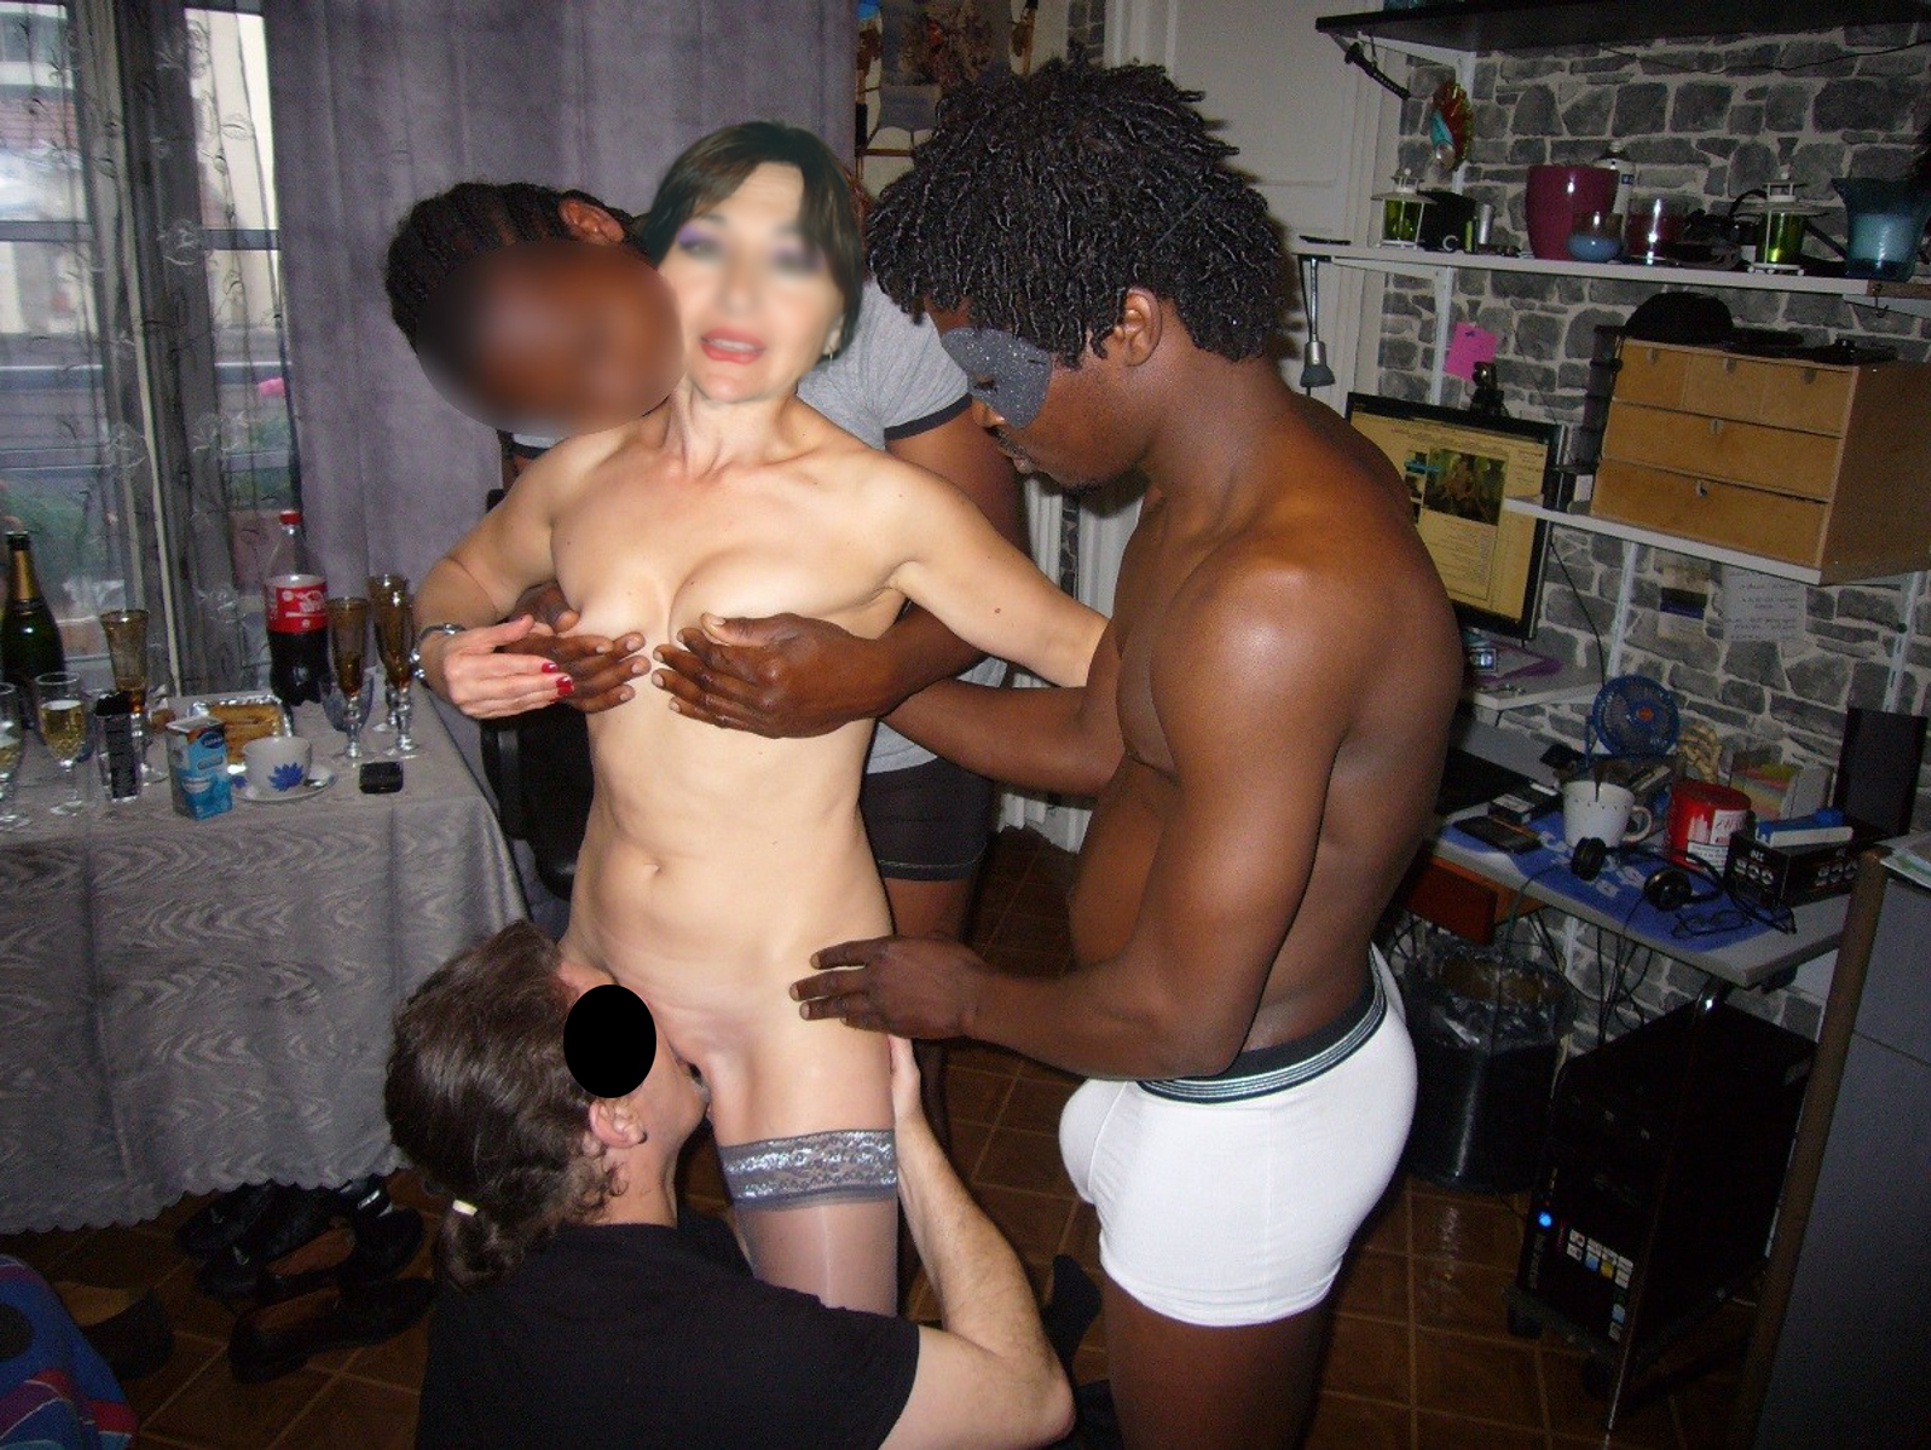 amateur-wife-hooker-identify-florida-snake-young-black-racer